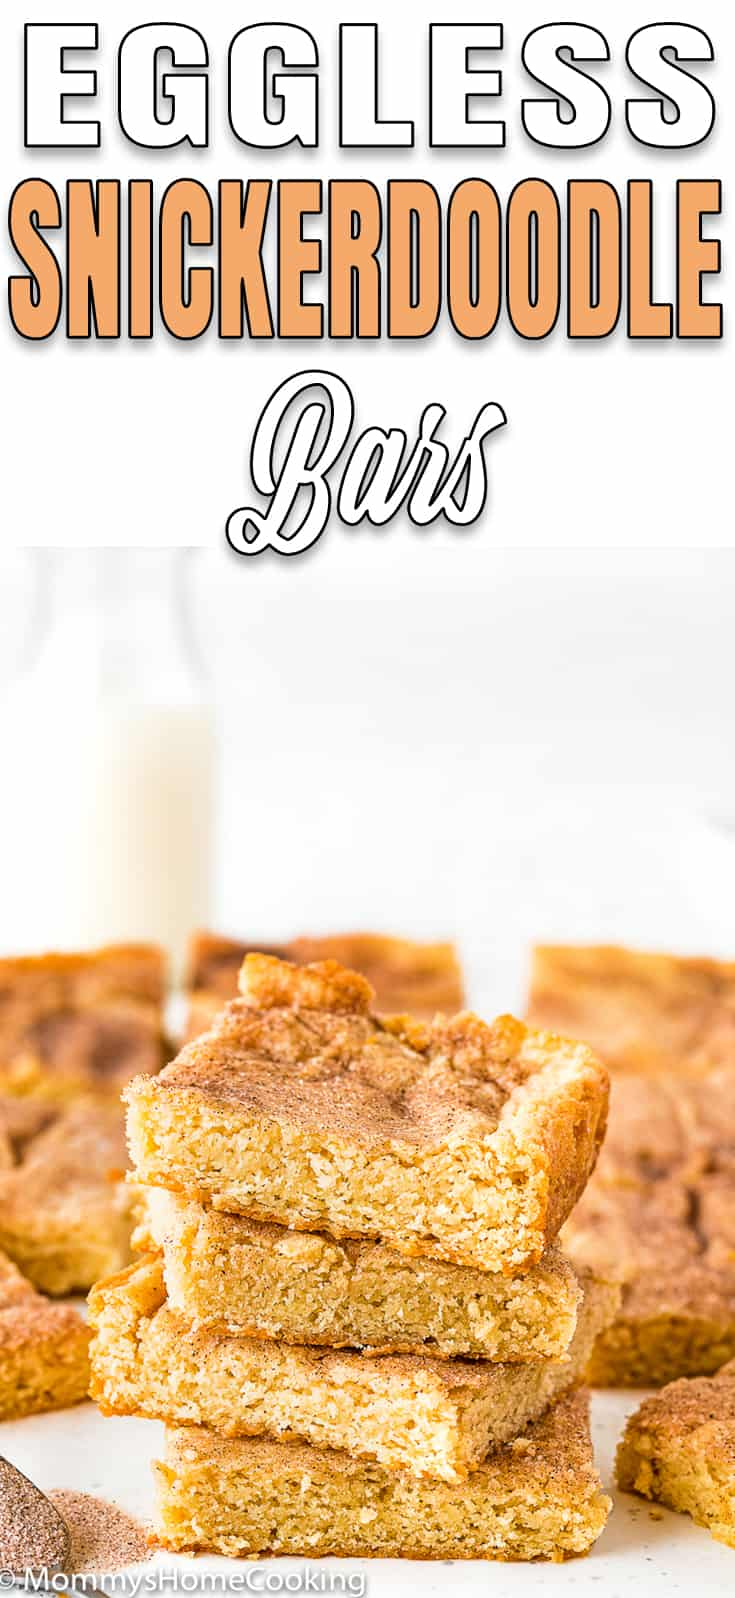 Stack of Eggless Snickerdoodle Bars with descriptive text